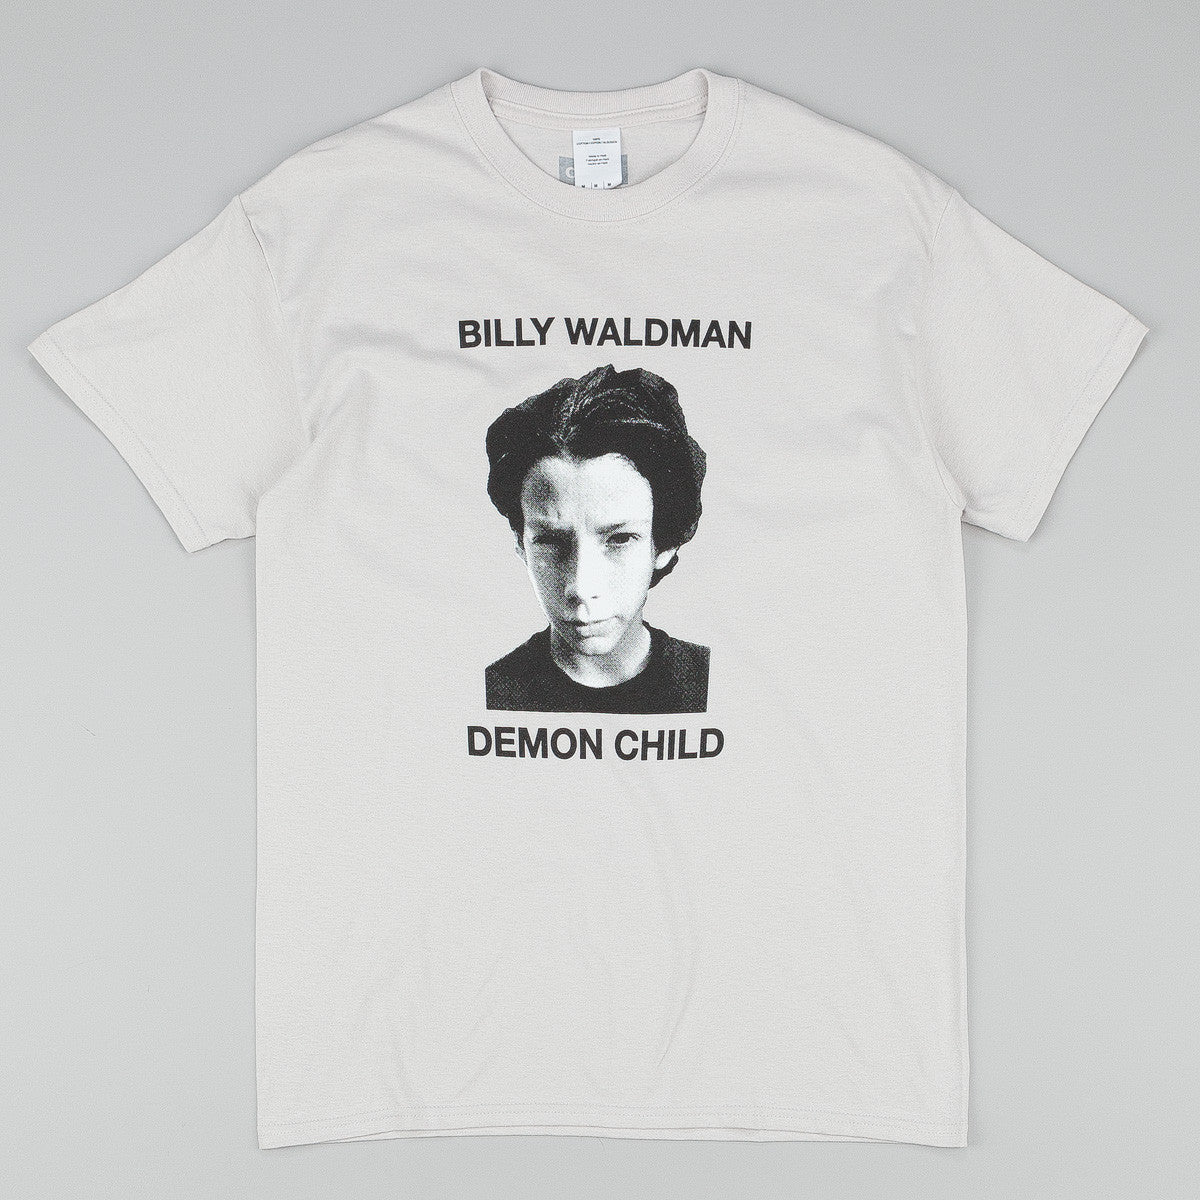 Dear Skating BW Demon Child T-Shirt - Silver